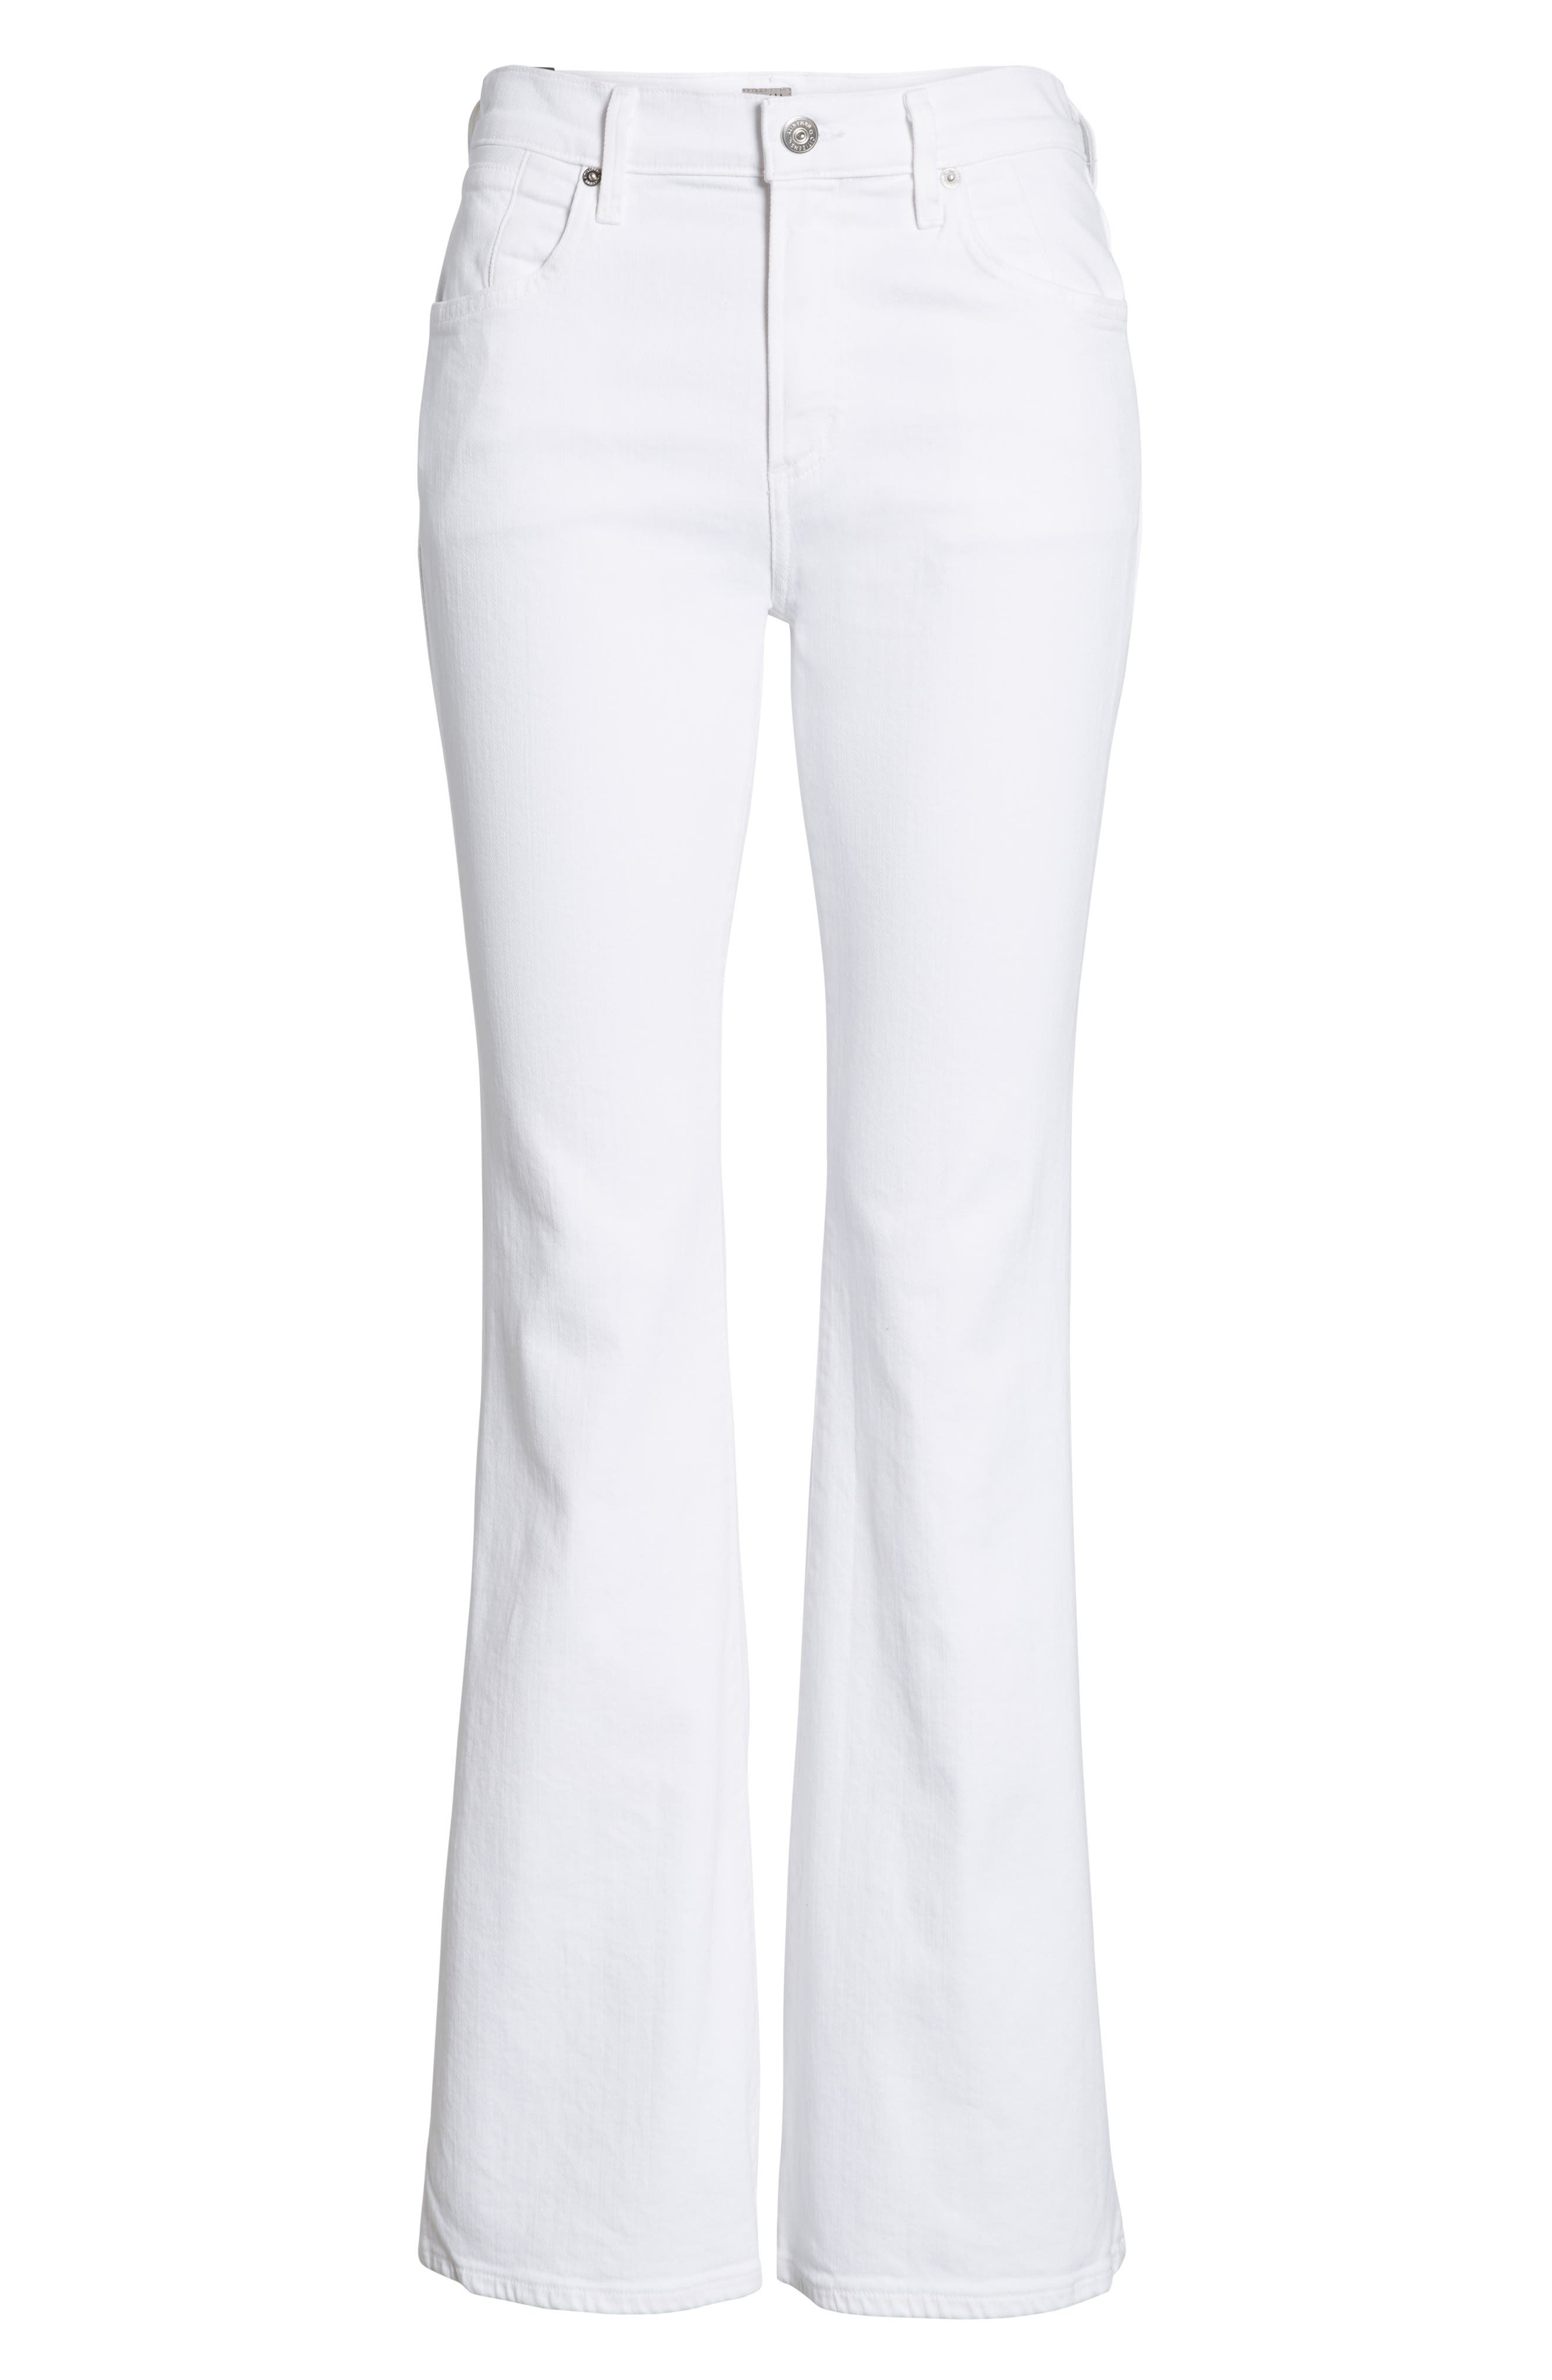 Fleetwood Flare Jeans,                             Alternate thumbnail 7, color,                             104